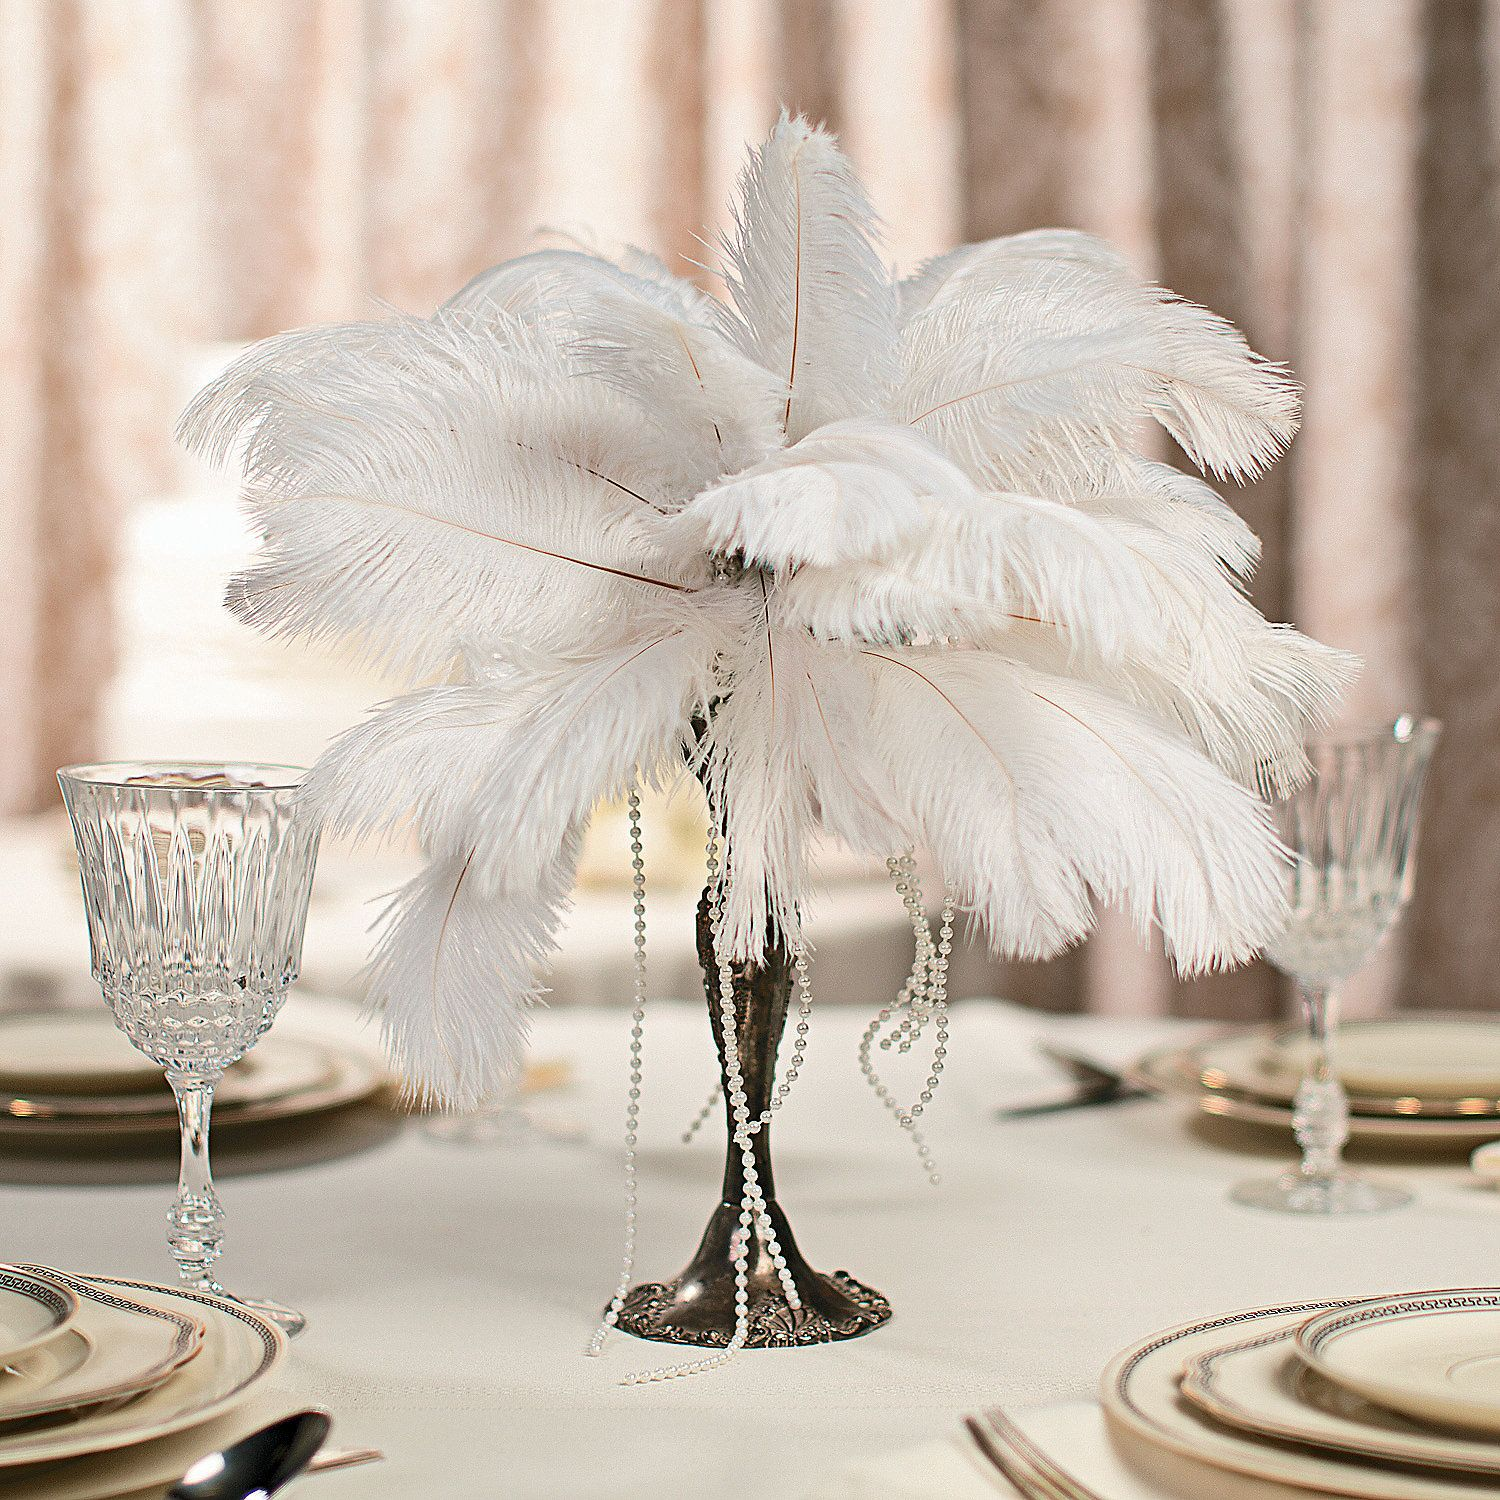 Feather Centerpiece Wedding : Nye gatsby art deco speakeasy prohibition moonshine